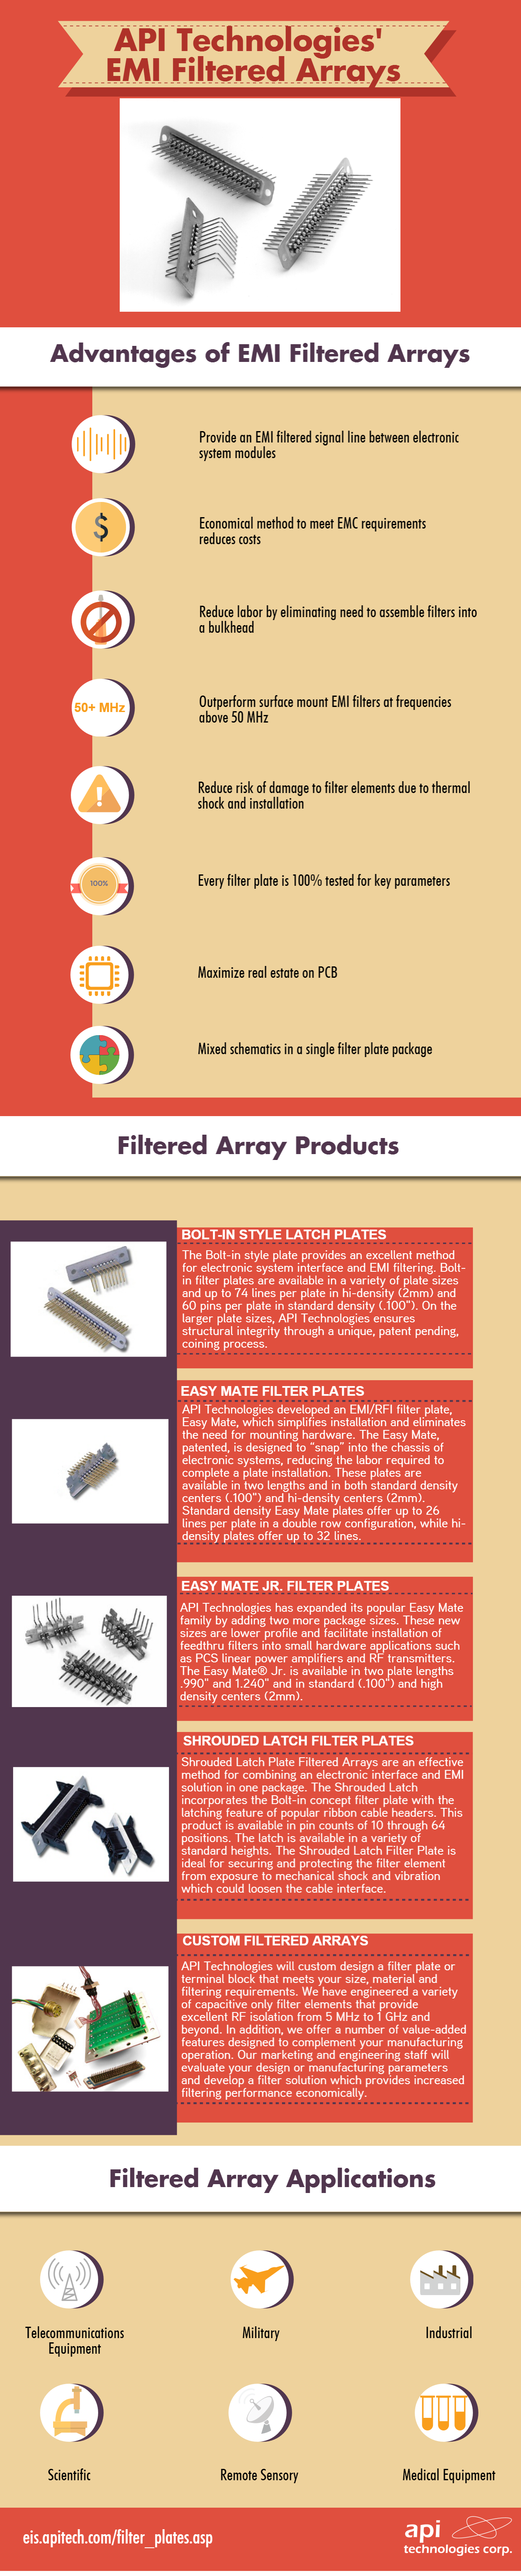 8 Advantages Of Api Technologies Emi Filter Arrays Filters Emi Technology